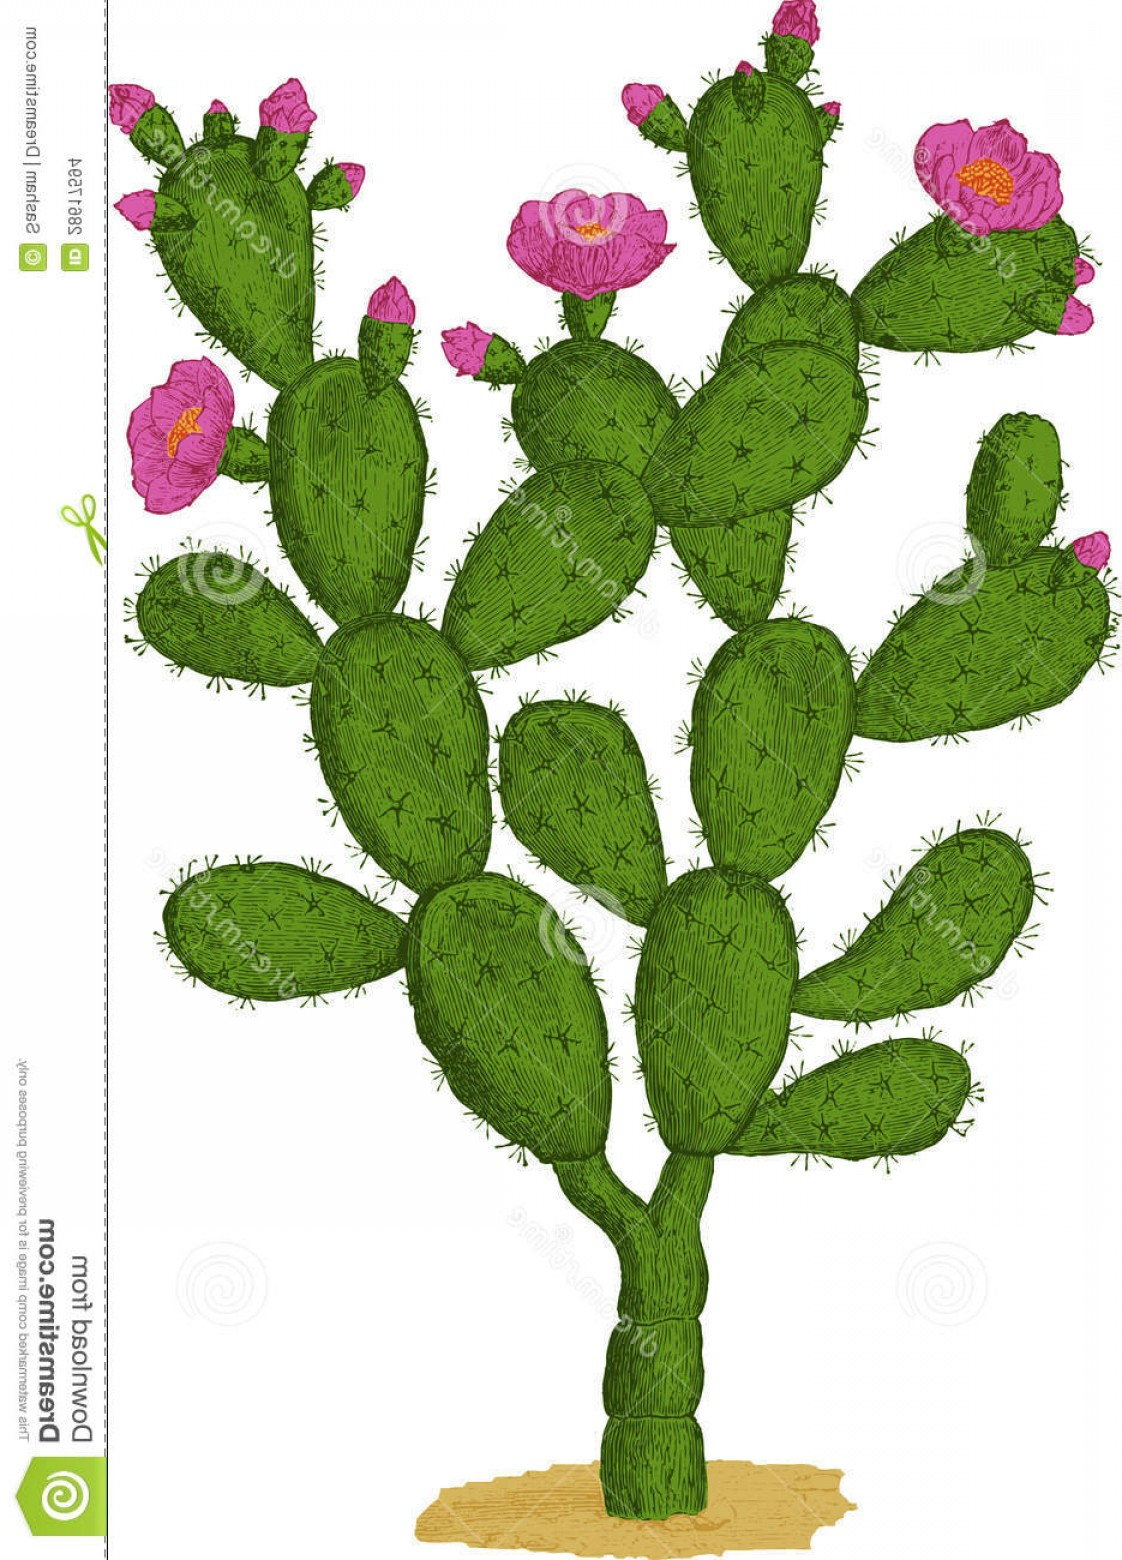 Cactus And Flower Vector: Stock Images Optunia Cactus Vector Image